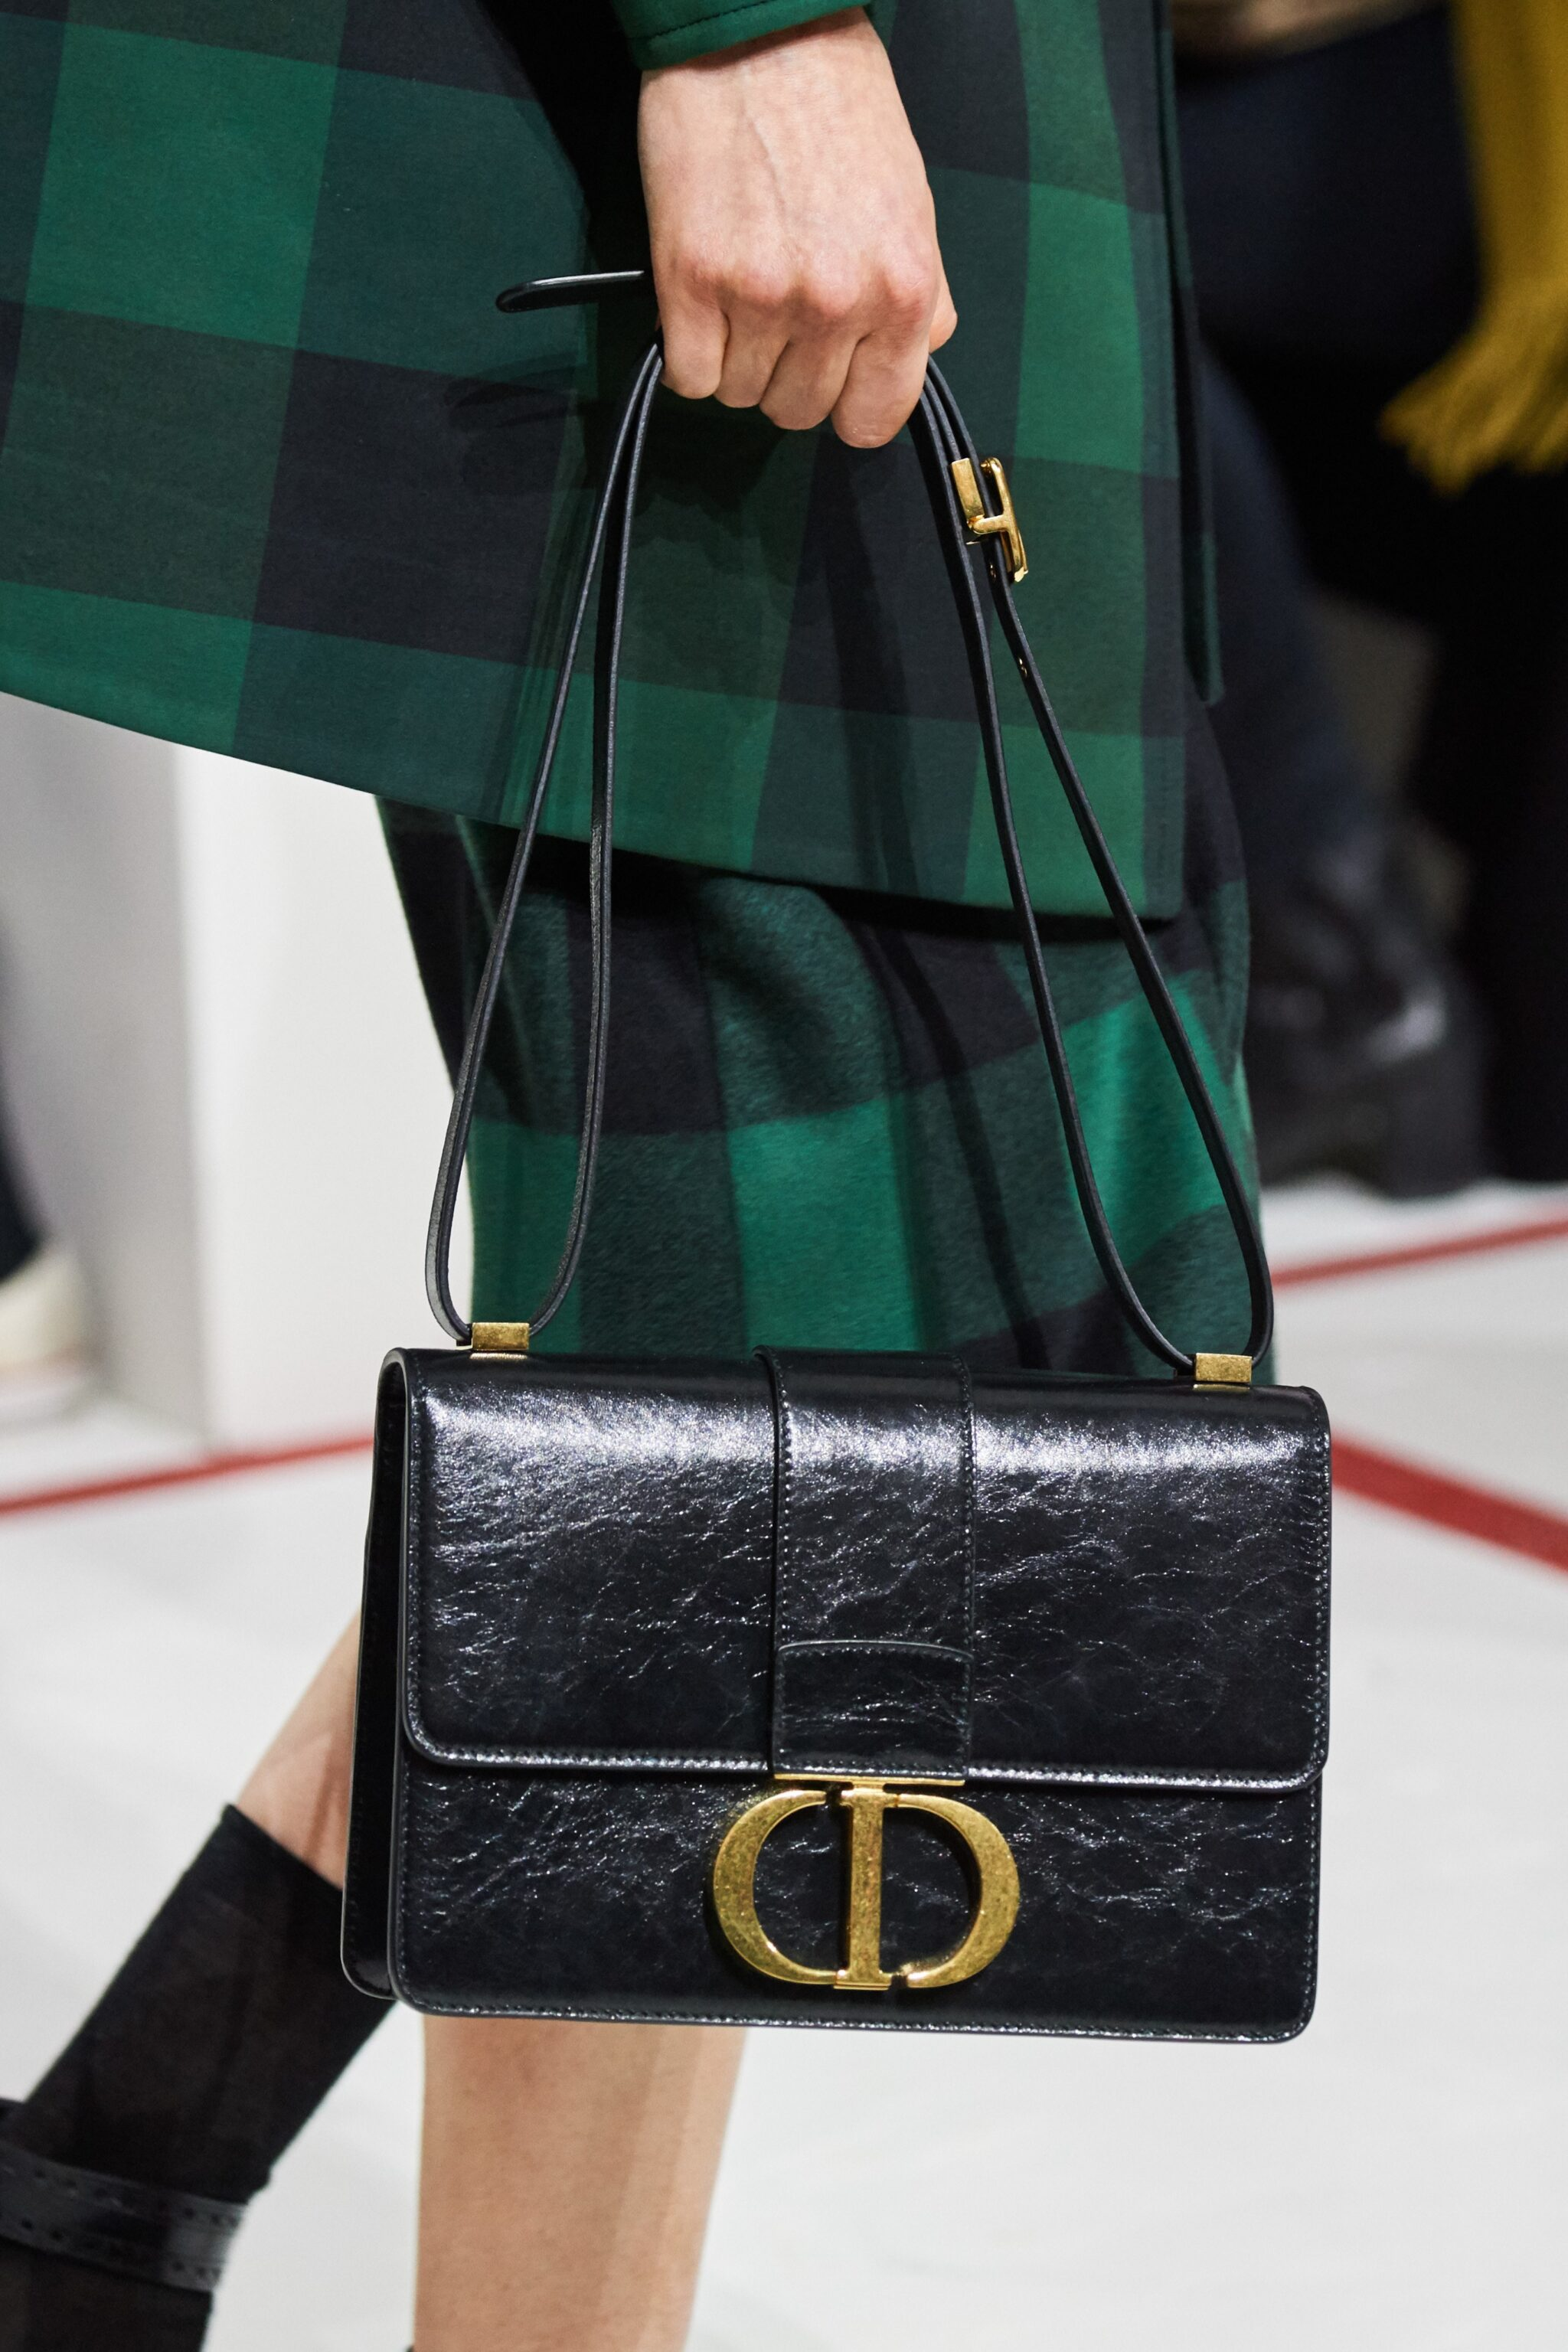 Dior Fall Winter 2019 Runway Bag Collection Spotted Fashion